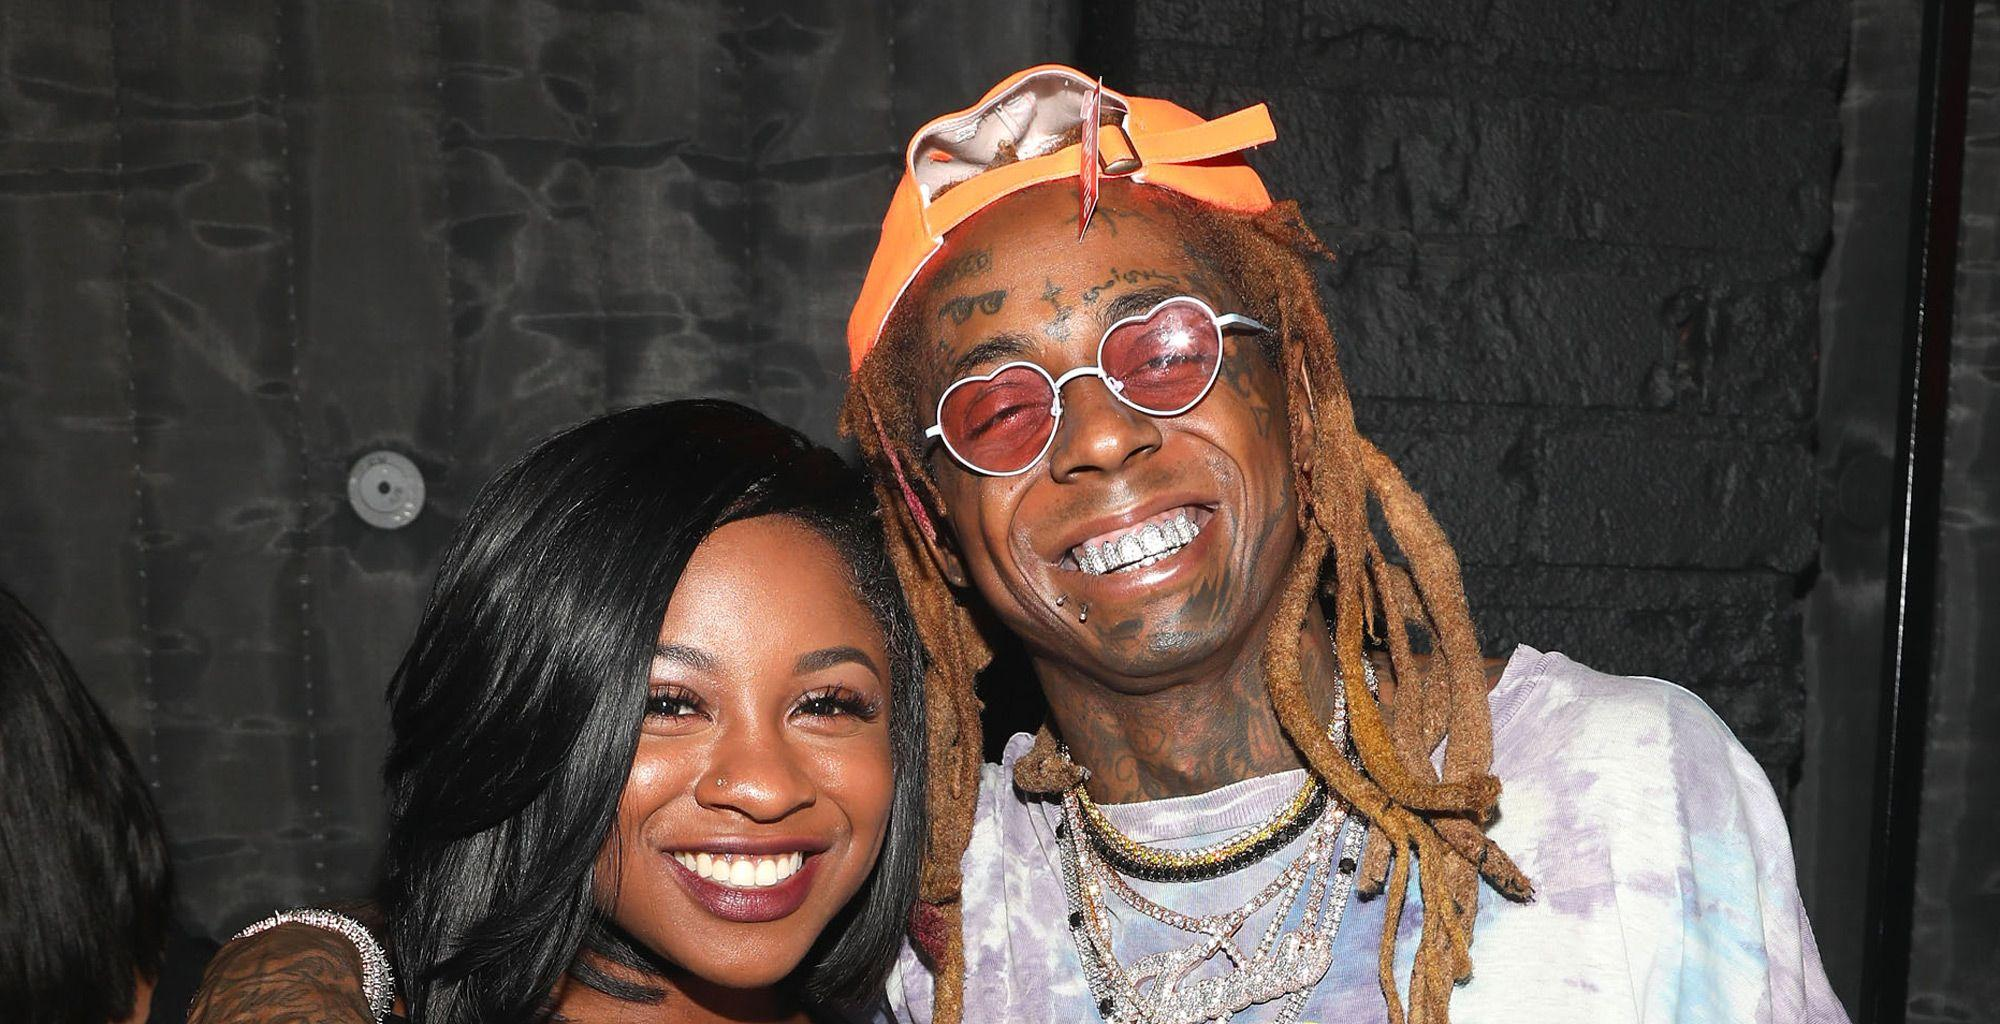 Reginae Carter Demands A 'Public Apology' From All Trump Supporters After Her Dad Lil Wayne Became One!